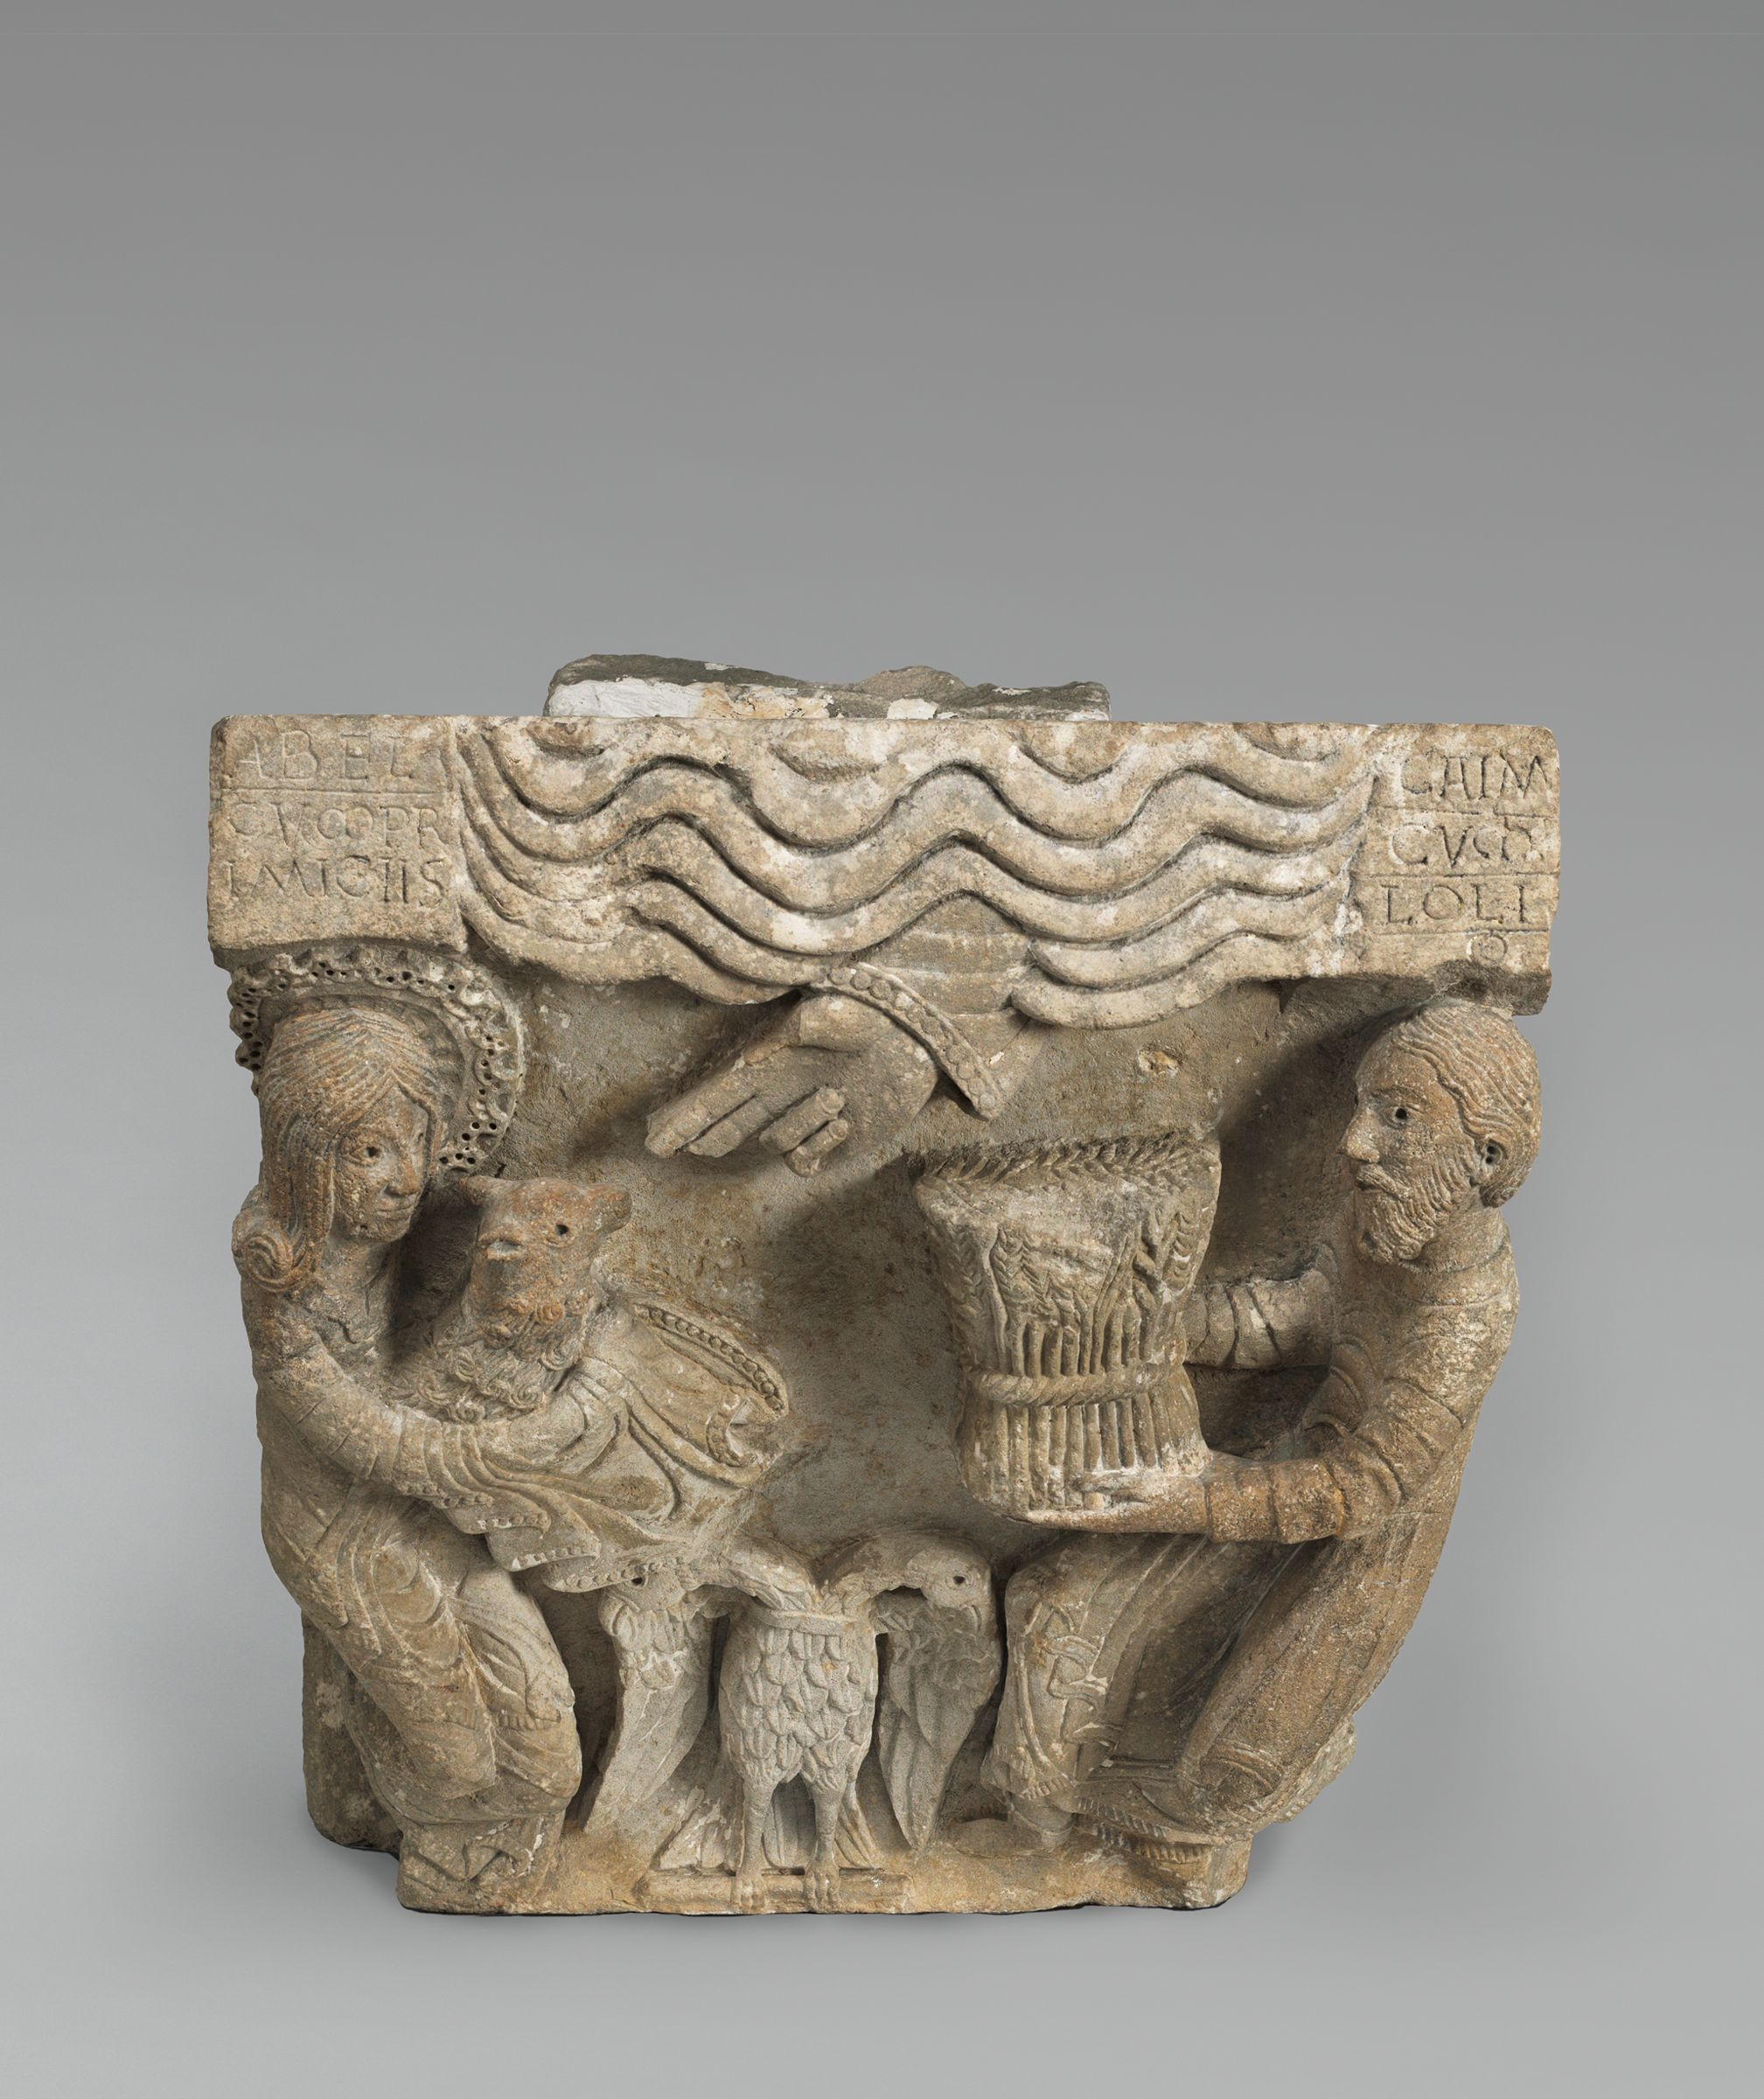 Capital From Moutiers-Saint-Jean; Principal Face: The Sacrifice Of Cain And Abel; Right Face: Samson Wrestling The Lion; Left Face: Tree Of Life(?)